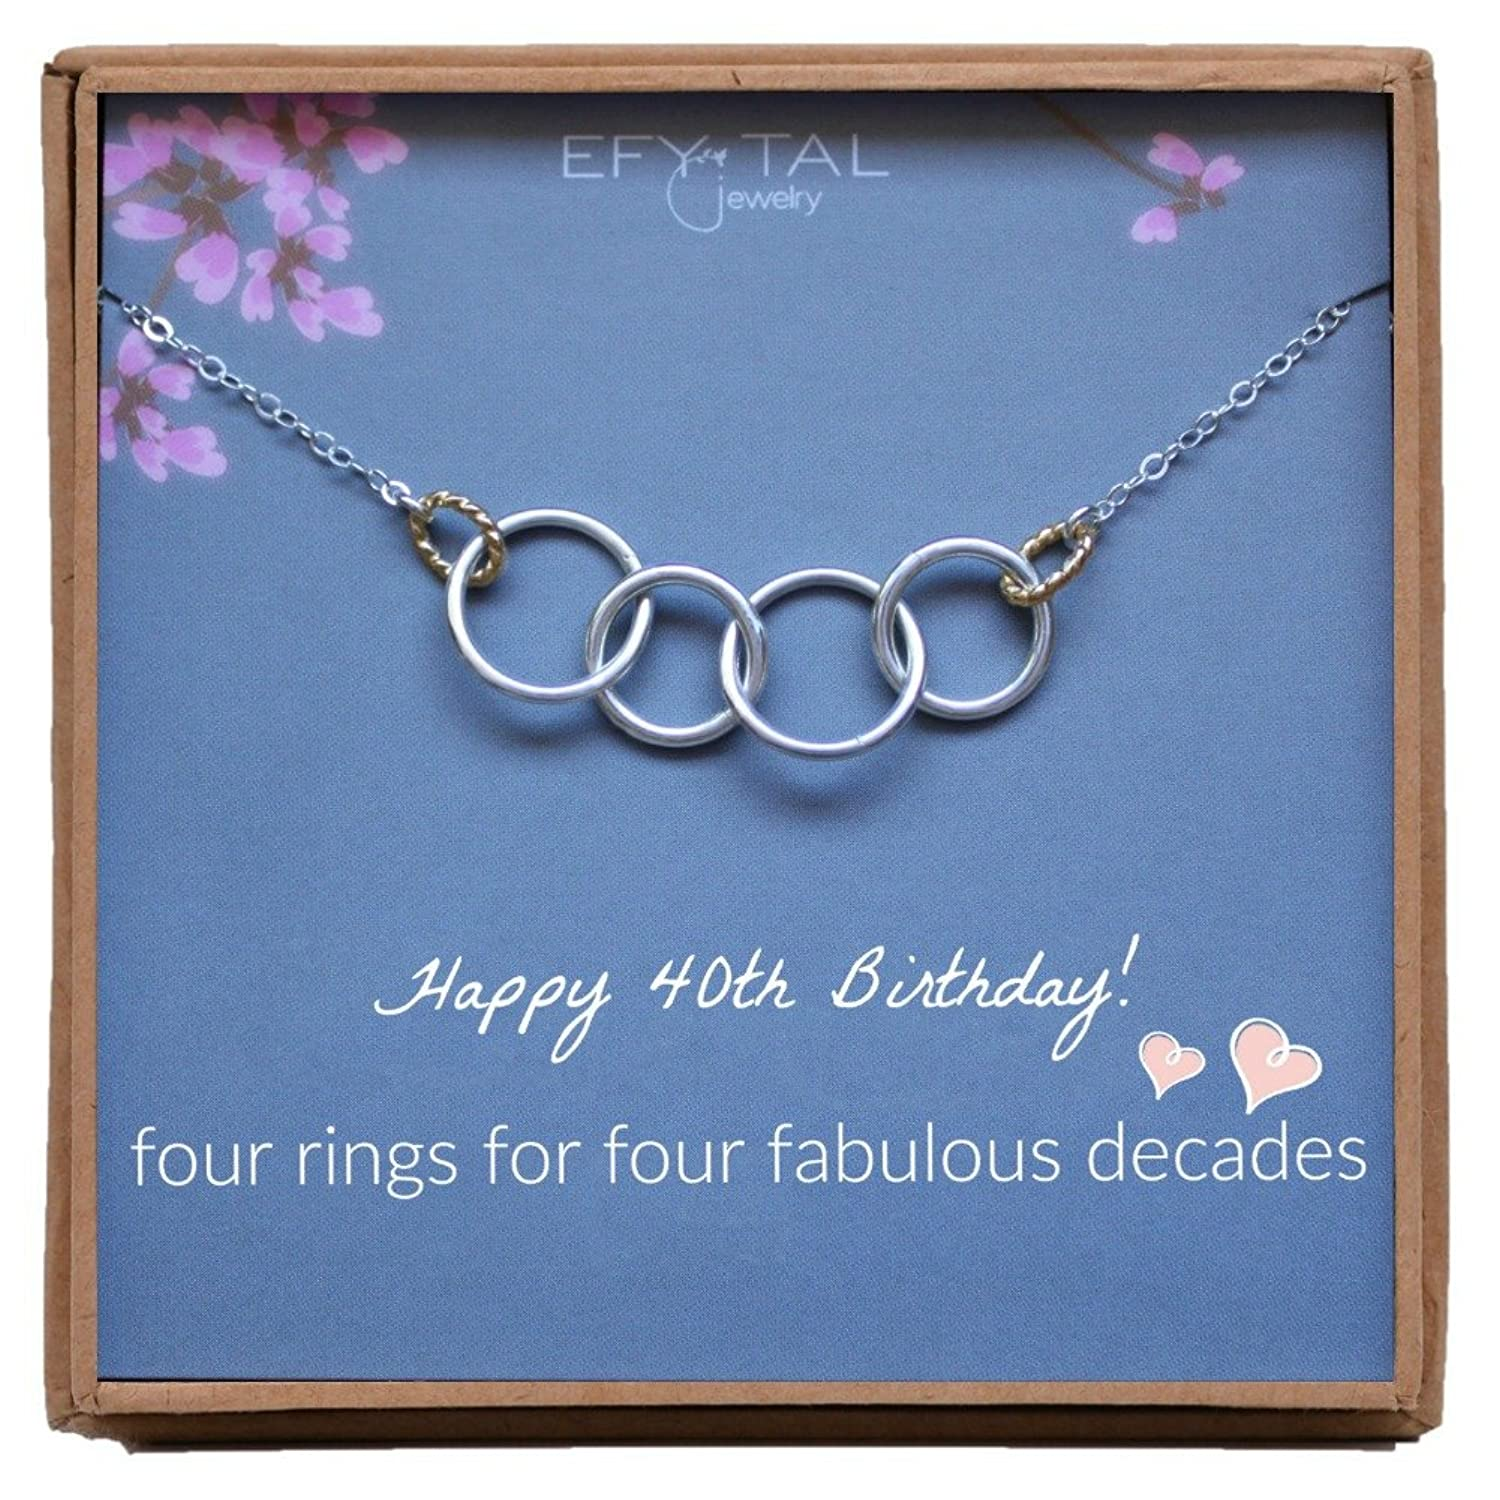 Efy Tal Jewelry Happy 40th Birthday Gifts For Women Necklace